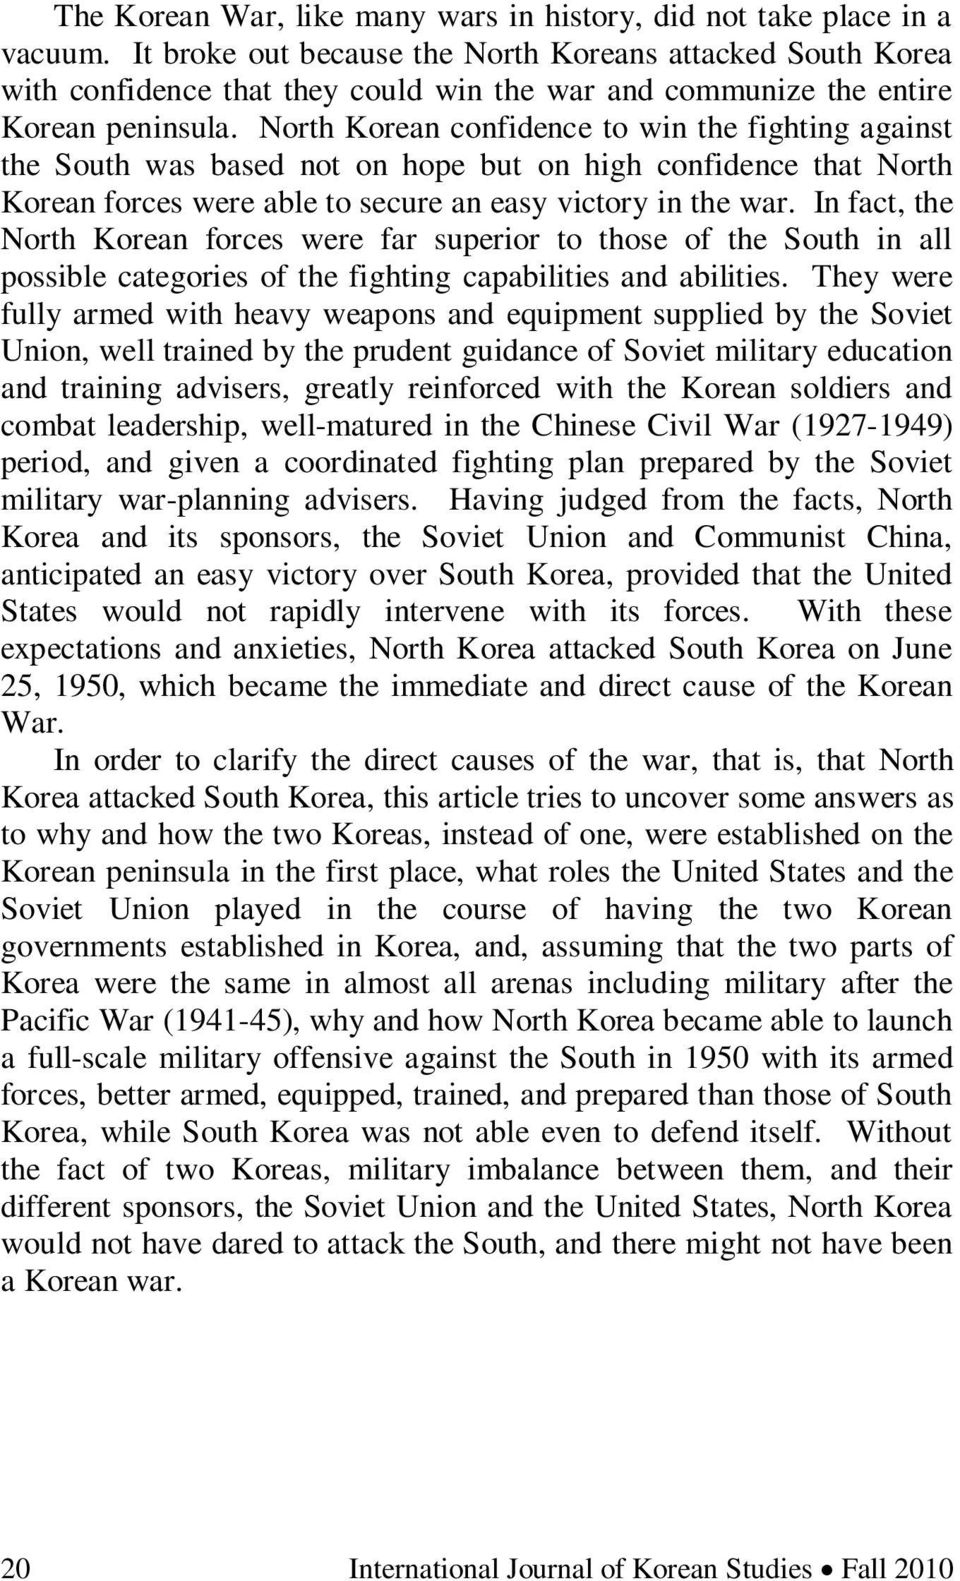 North Korean confidence to win the fighting against the South was based not on hope but on high confidence that North Korean forces were able to secure an easy victory in the war.